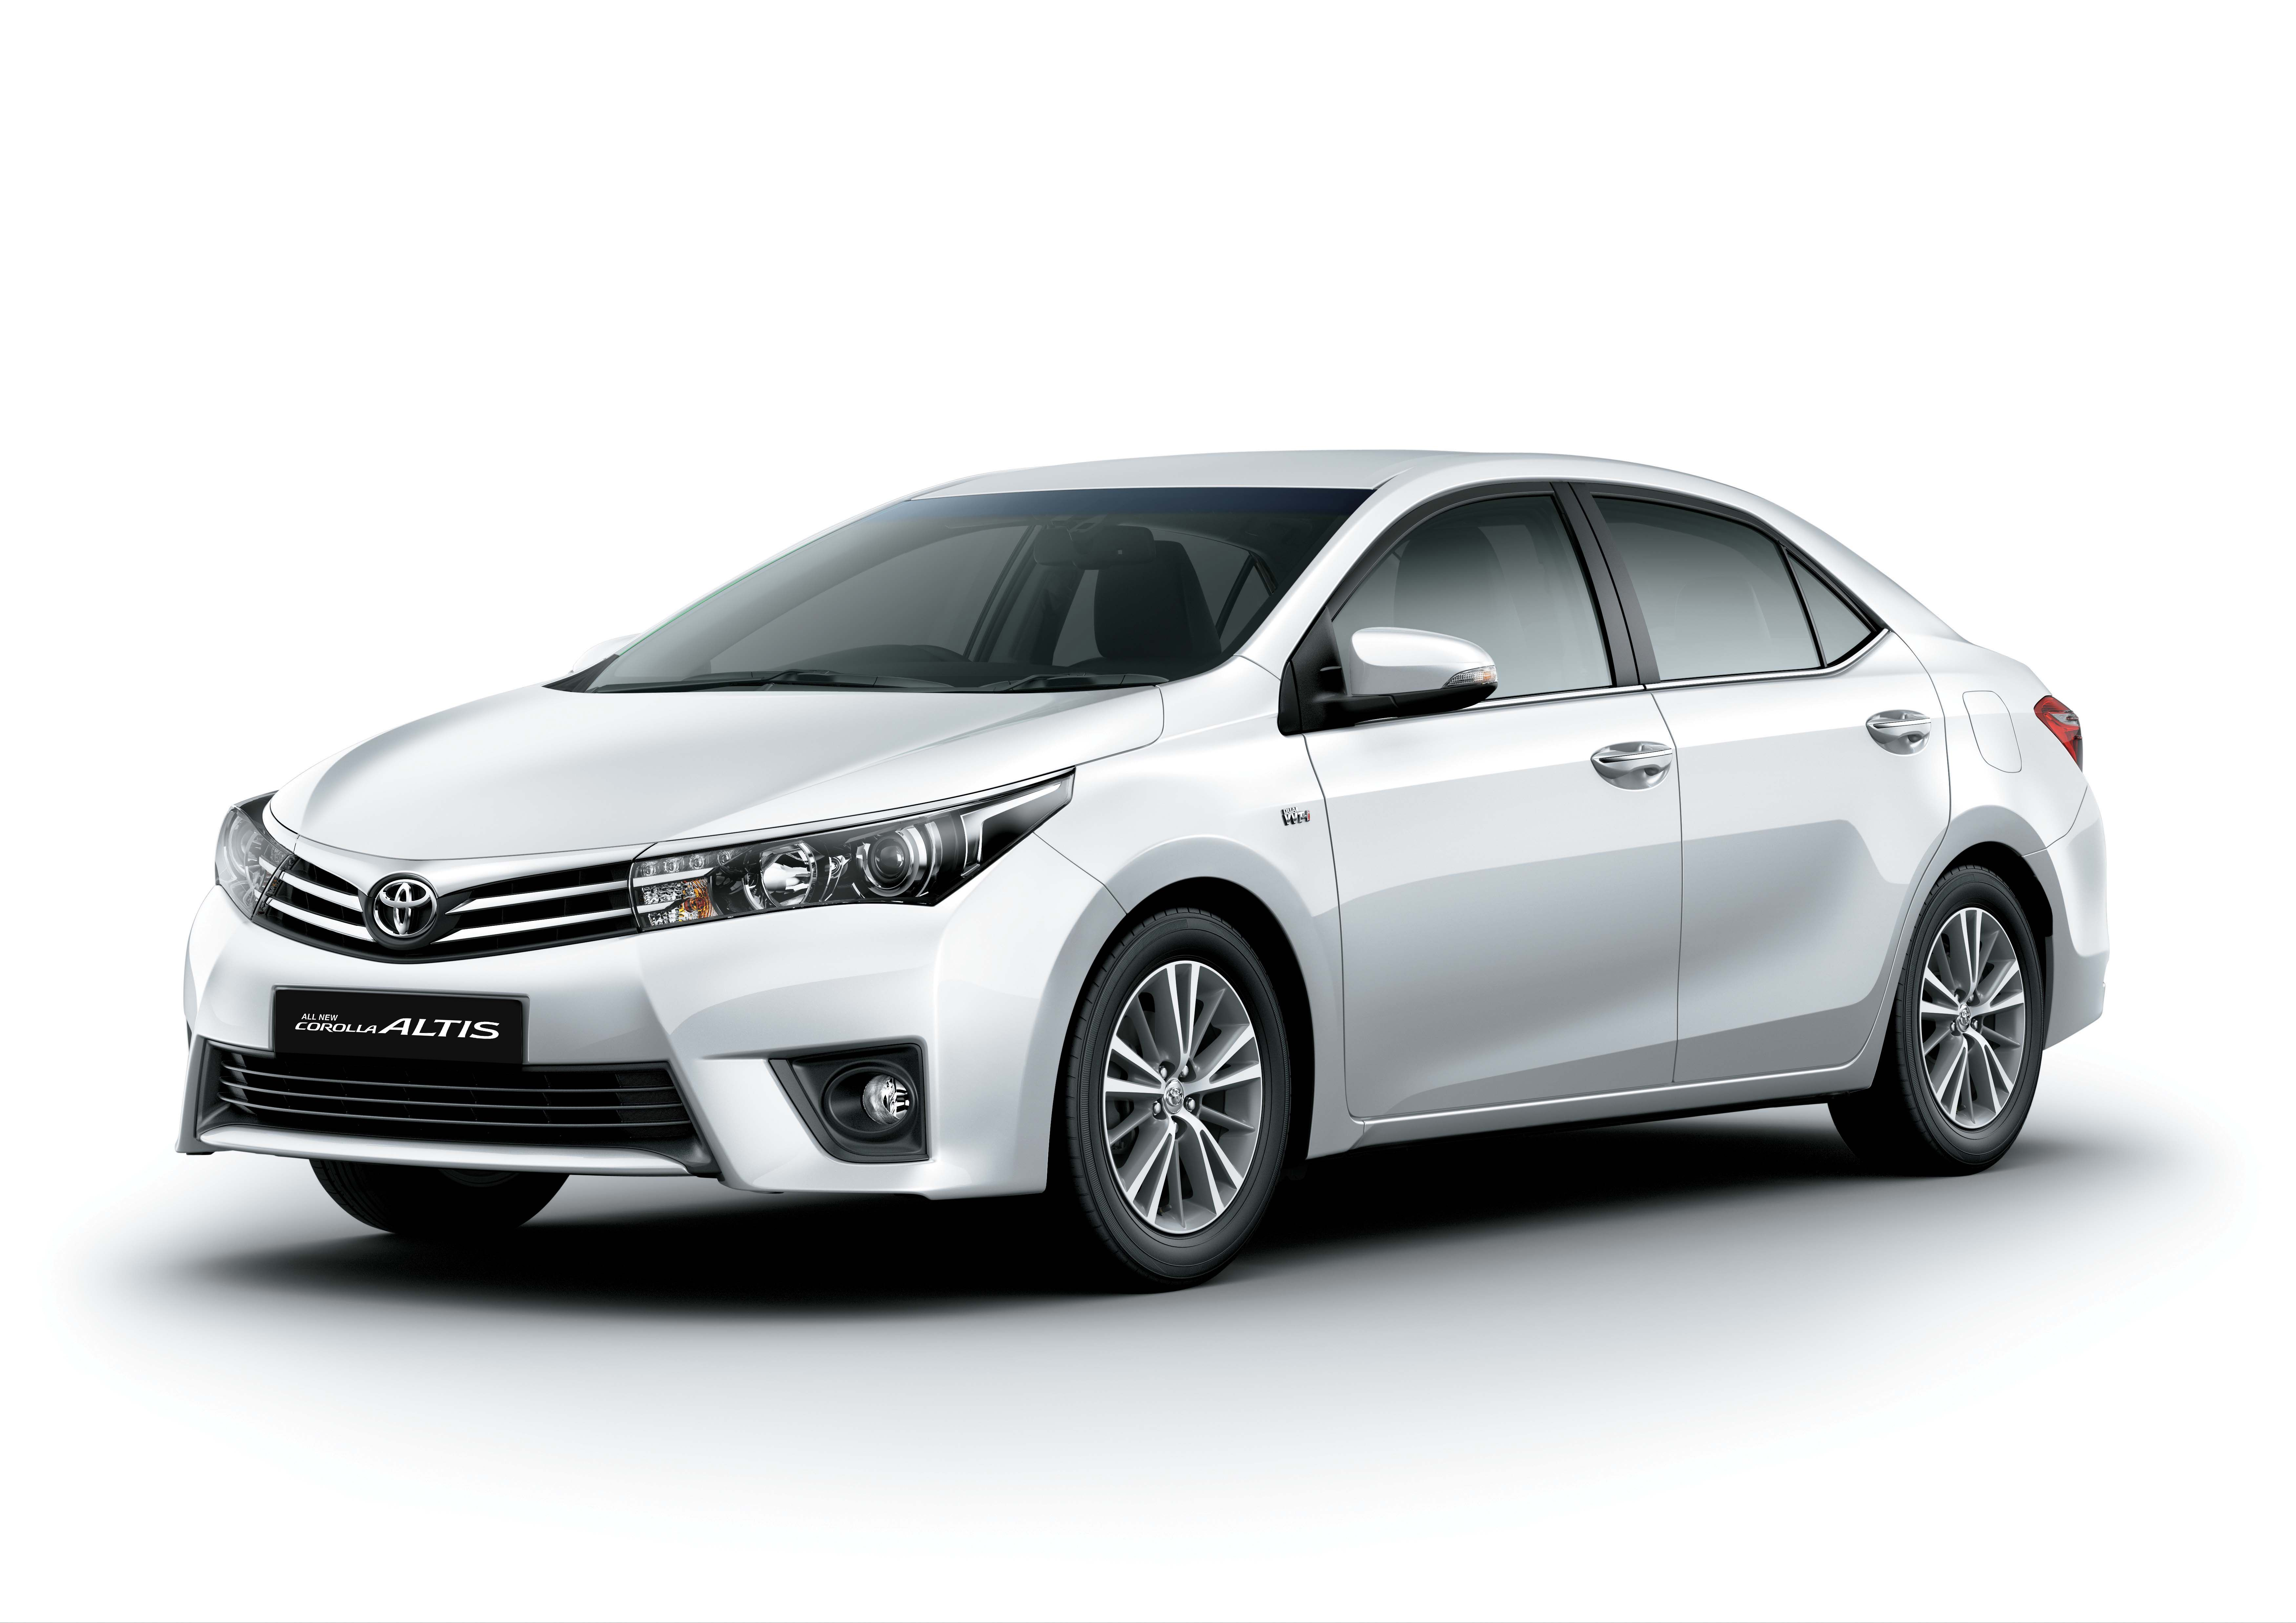 Toyota corolla hd wallpapers backgrounds